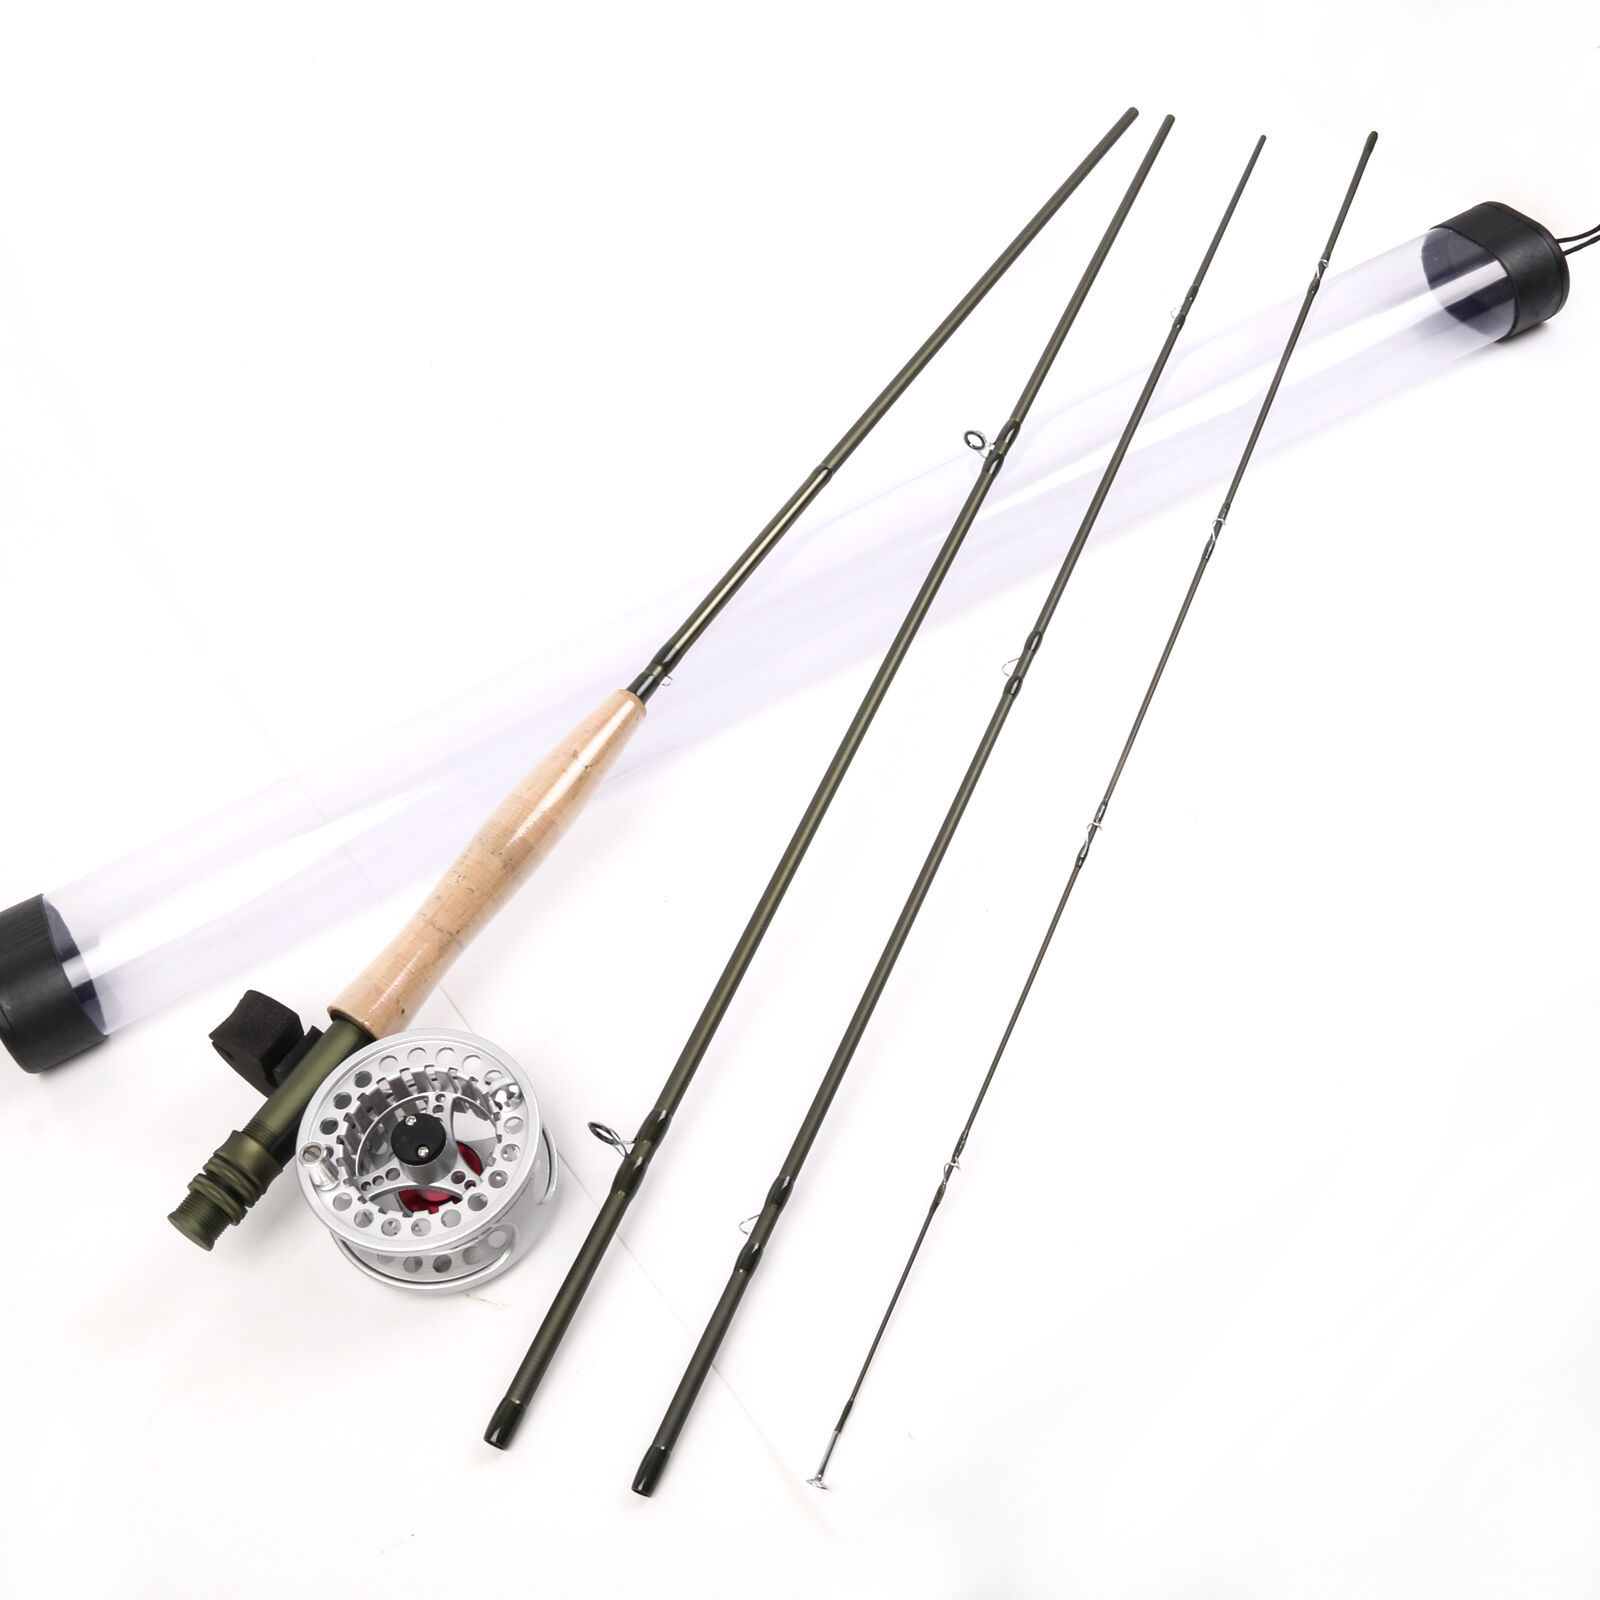 Fly Rod  9 FT 5 Weight 4 Section Fast Action Fly Fishing Rod And Reel Combo  cheapest